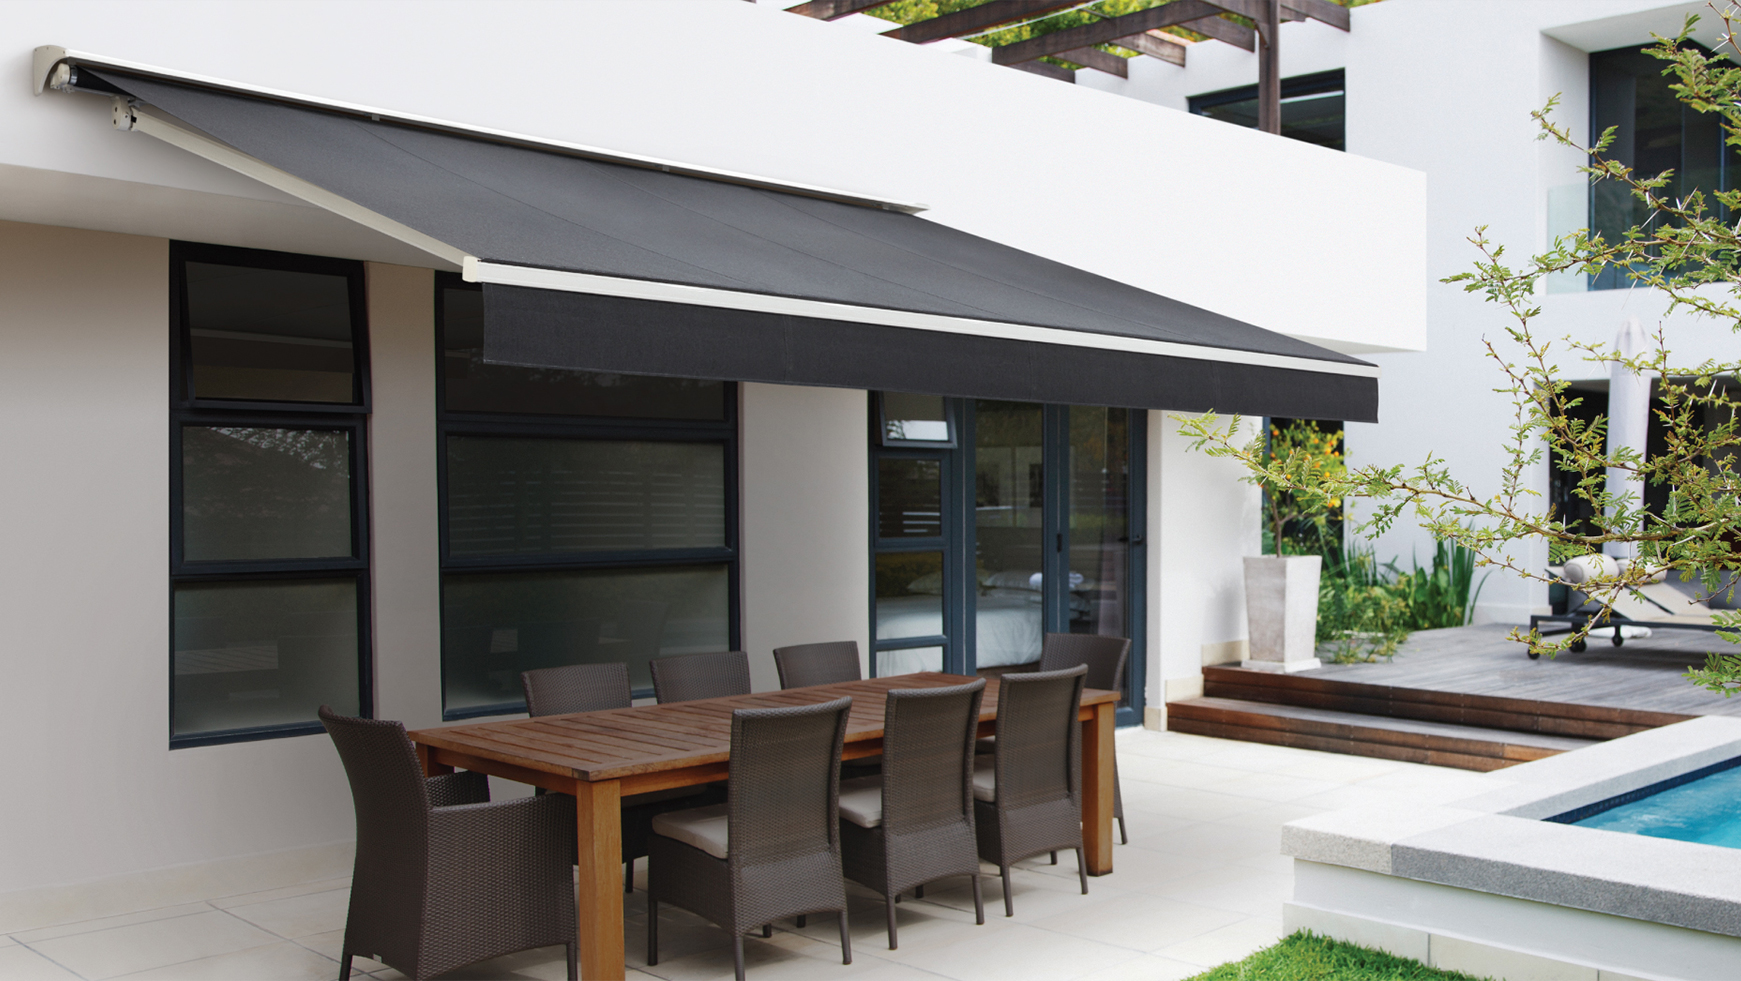 Kona Awnings covering an outdoor dining setting